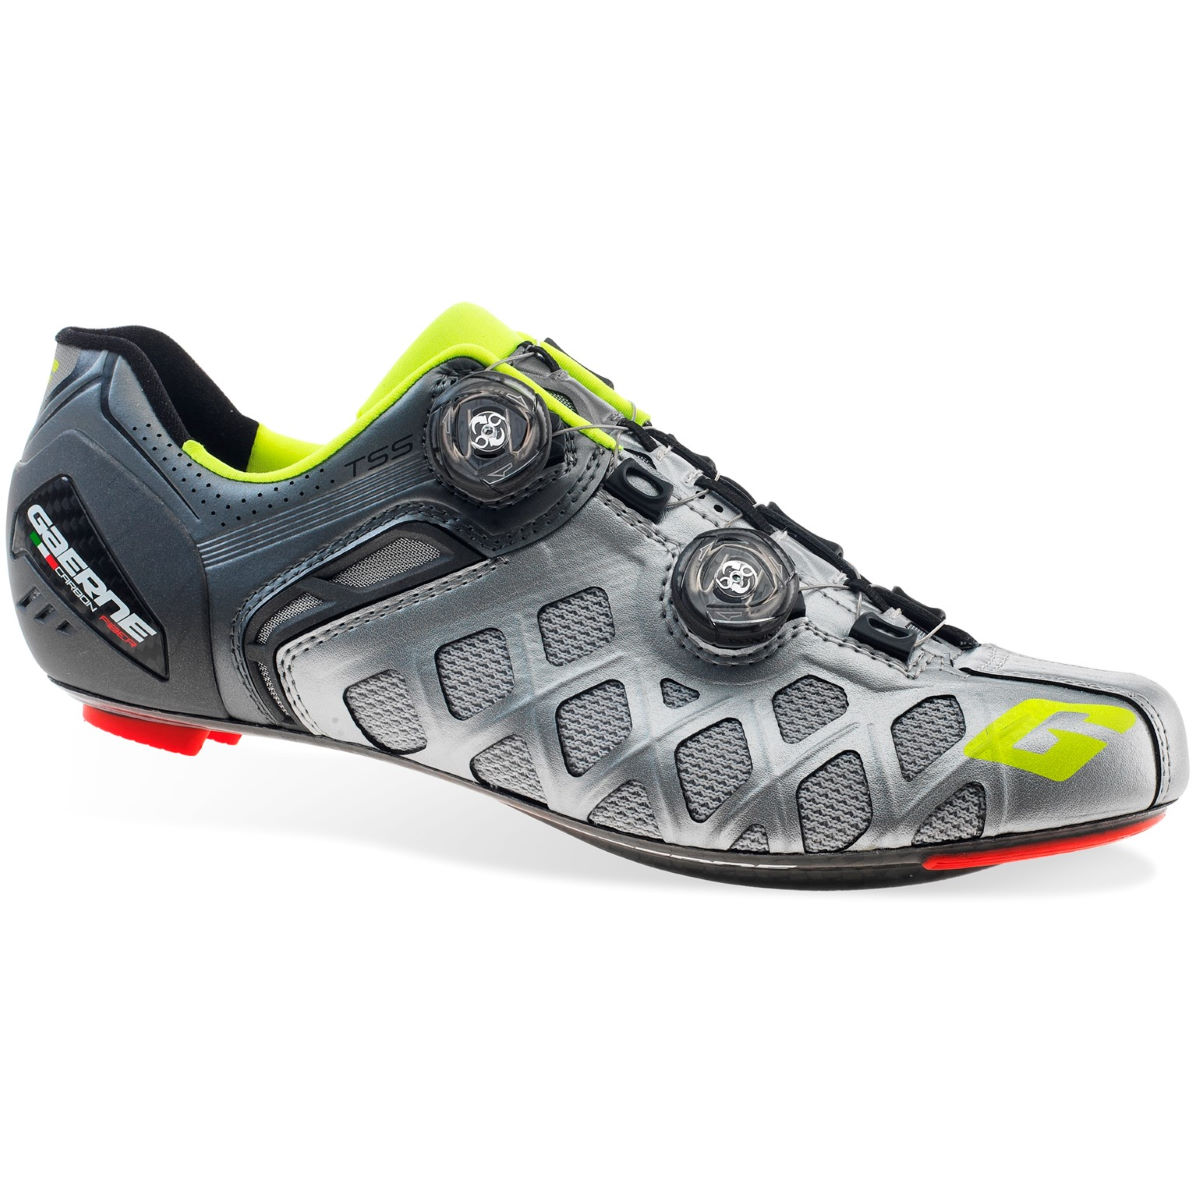 Zapatillas de carretera Gaerne Carbon Stilo Summer SPD-SL - Zapatillas para bicicletas de carretera